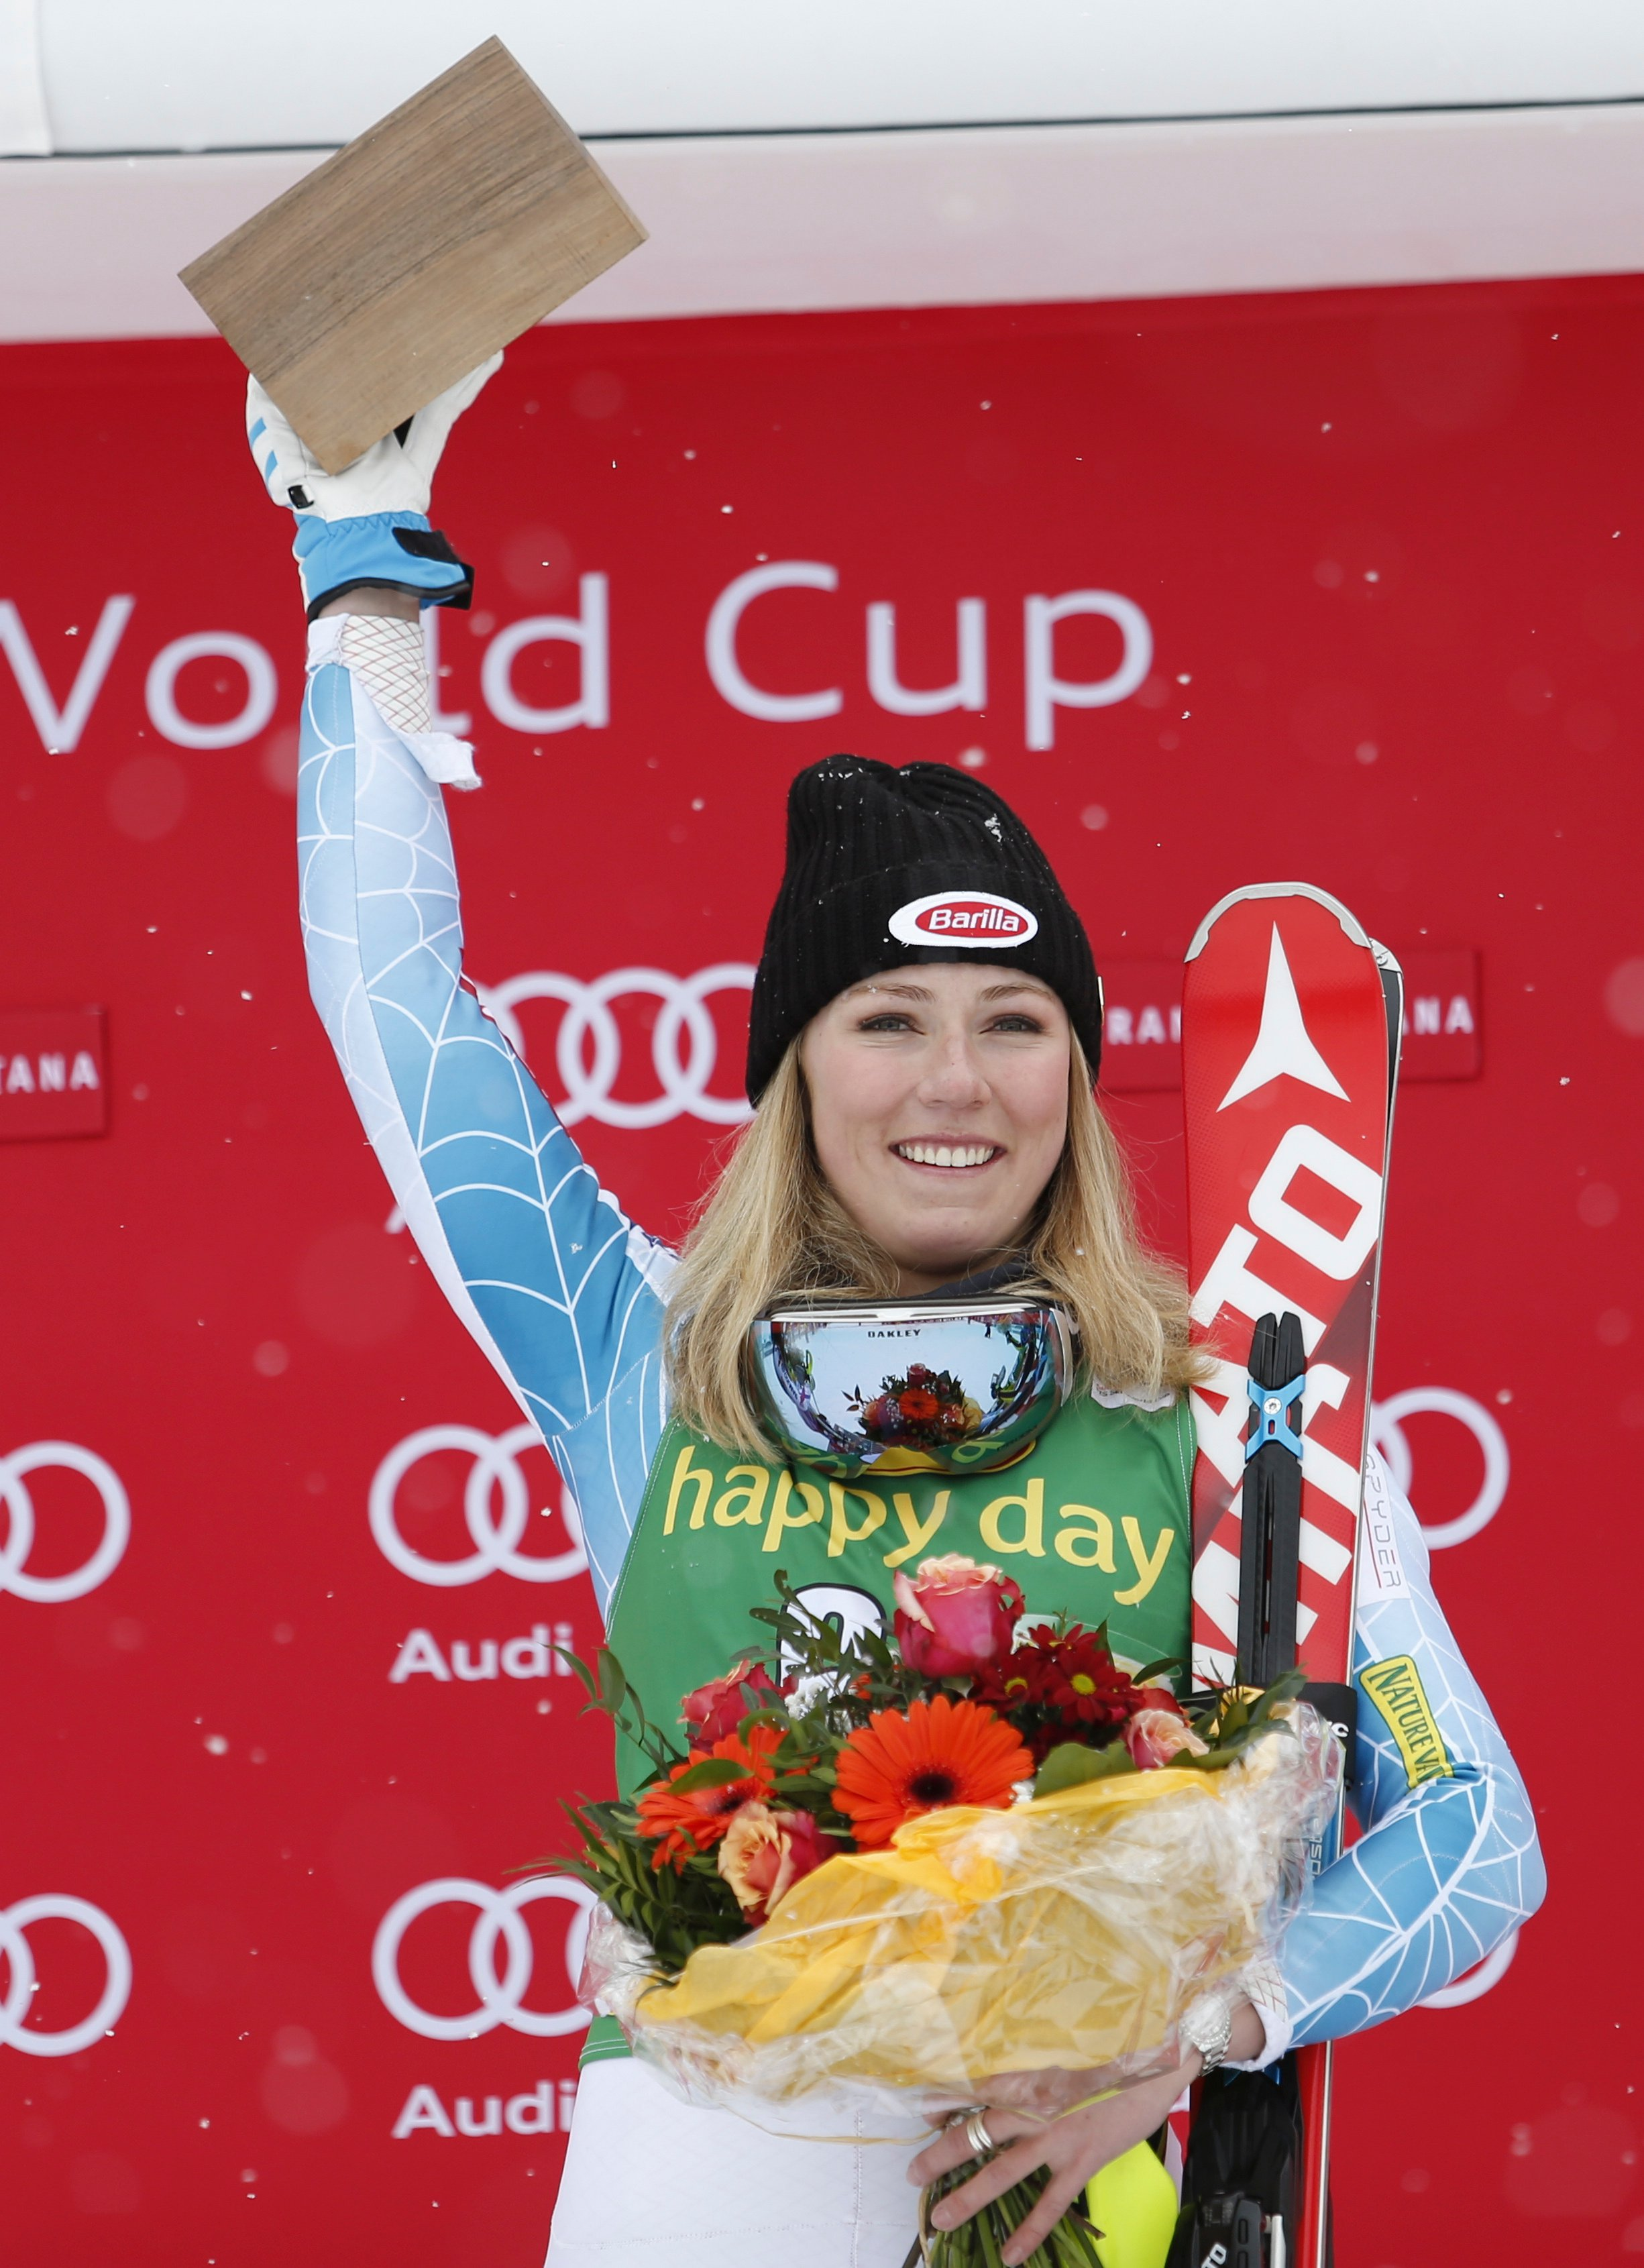 switzerland_alpine_skiing_world_cup-48c4_r255.jpeg